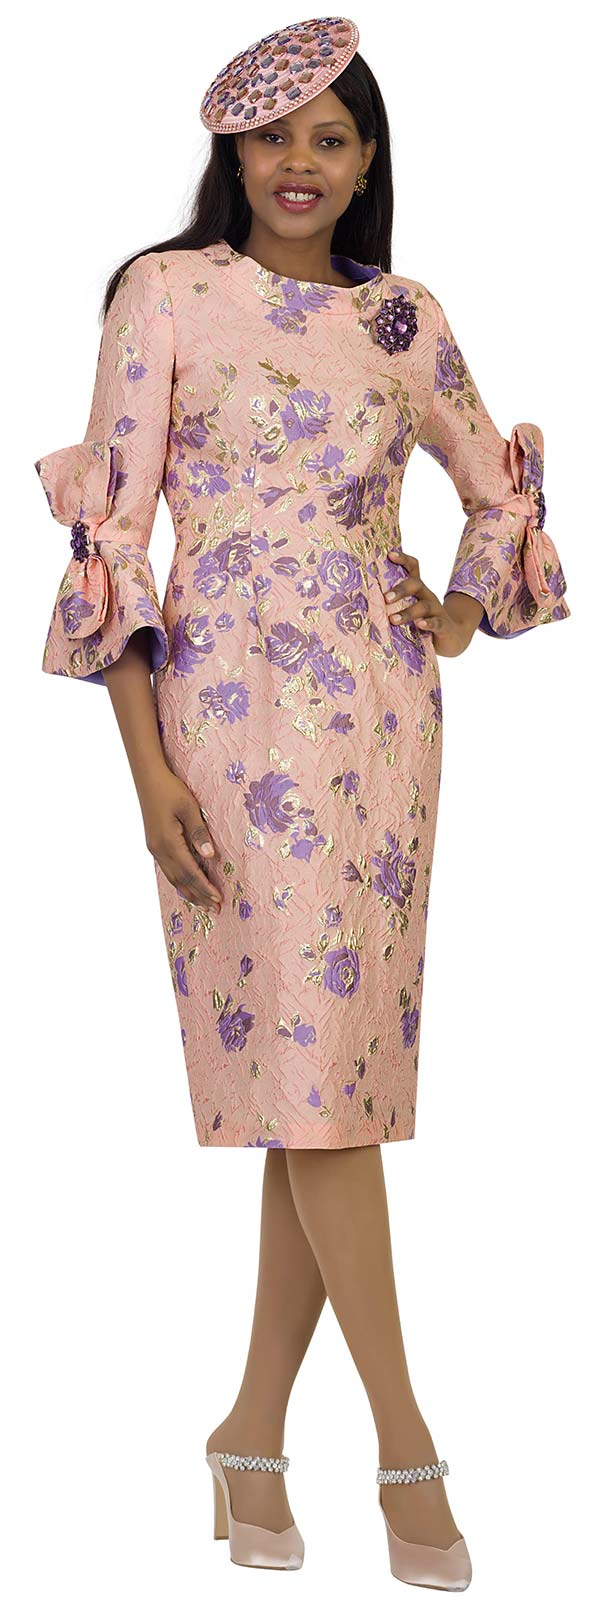 Lily and Taylor 4476 - Novelty Floral Brocade Fabric Sheath Dress With Bow Adorned Bell Cuff Sleeves